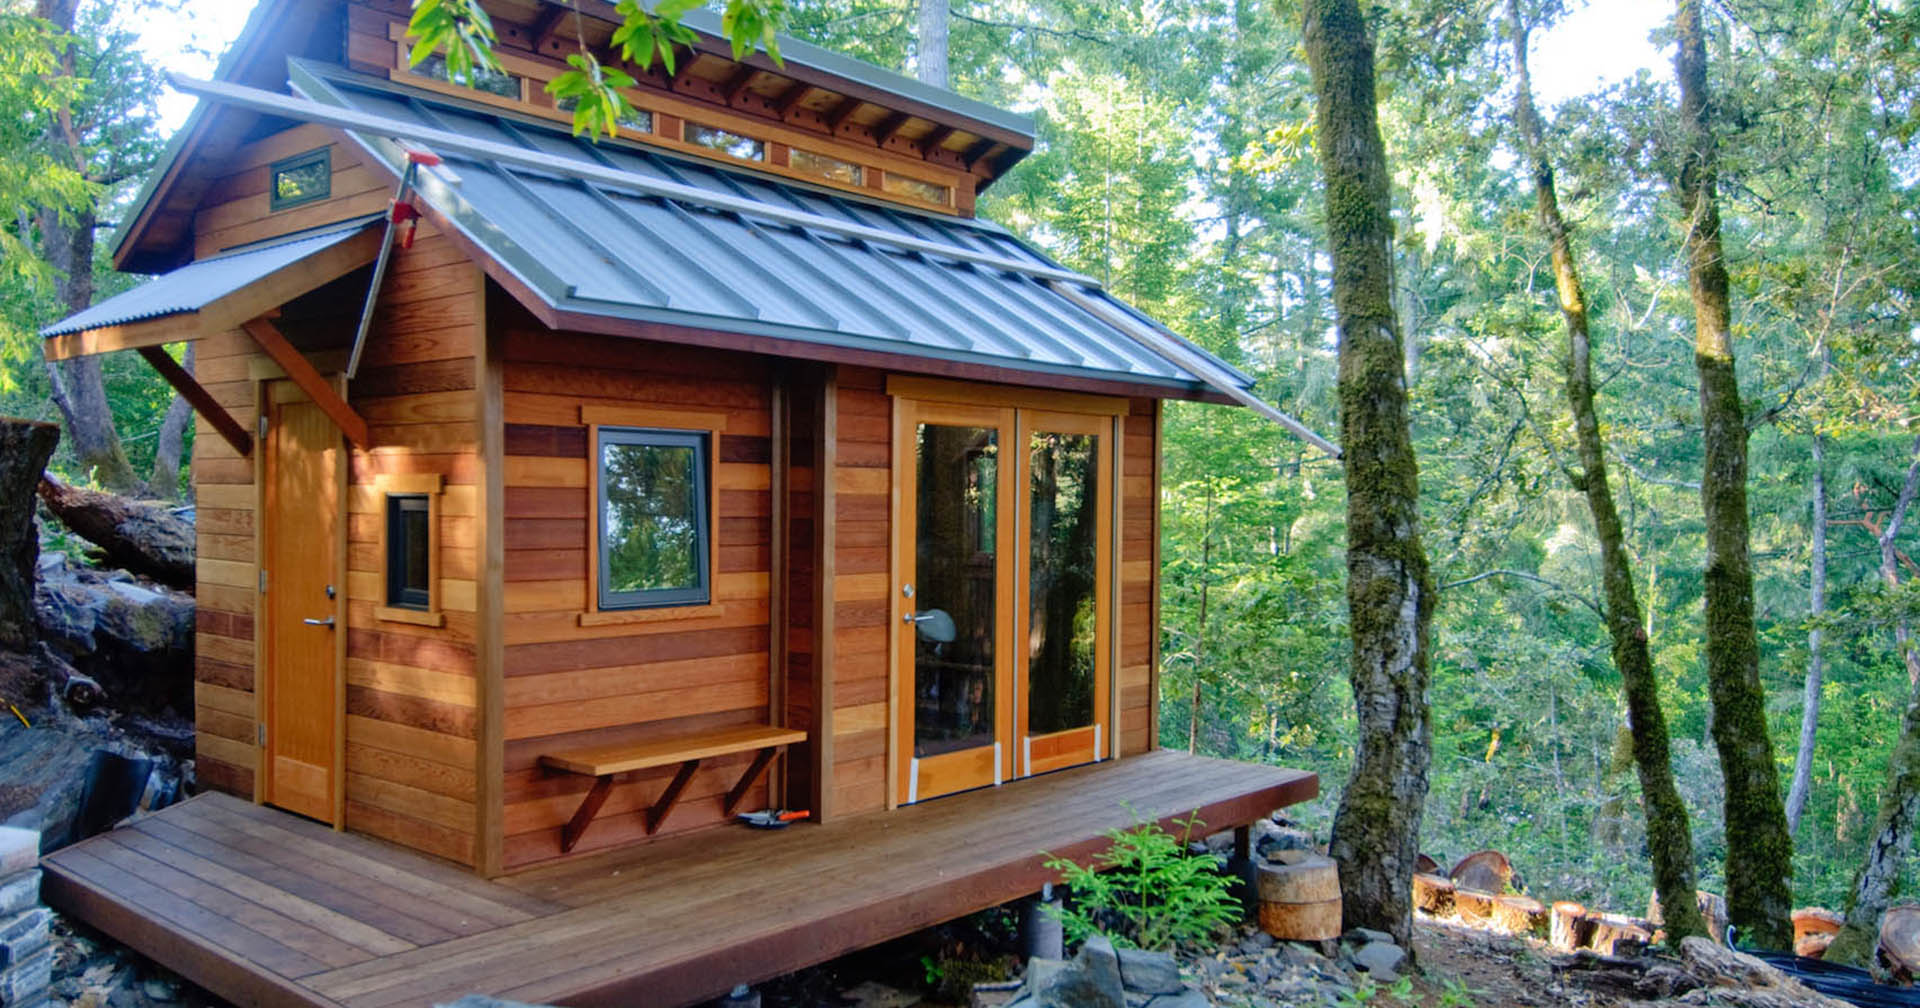 Square Foot Homes 100-square-foot tiny homes | insidehook